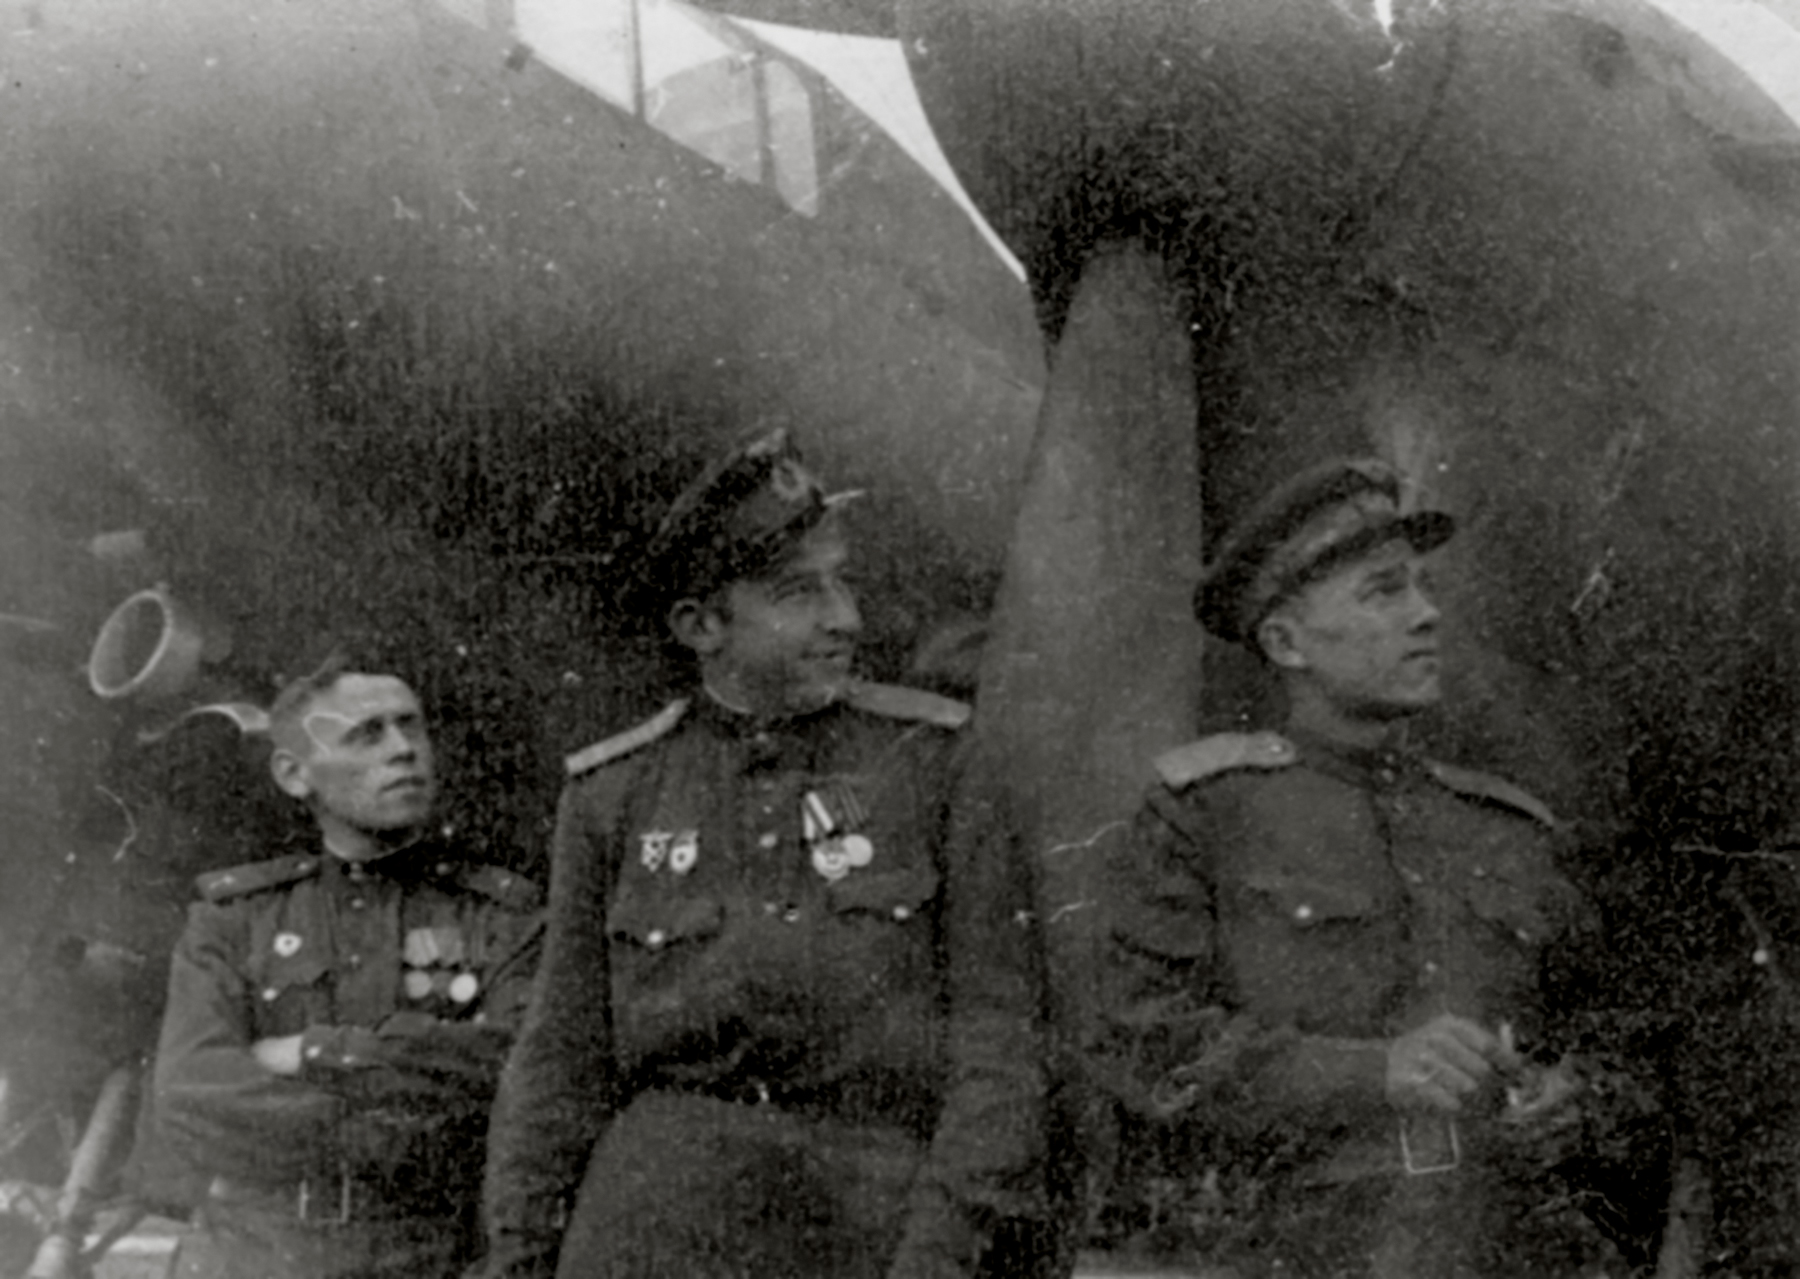 Aircrew Soviet 127GvBAP with Nikolai A Shchichko (center) with colleagues Stalingrad front 01